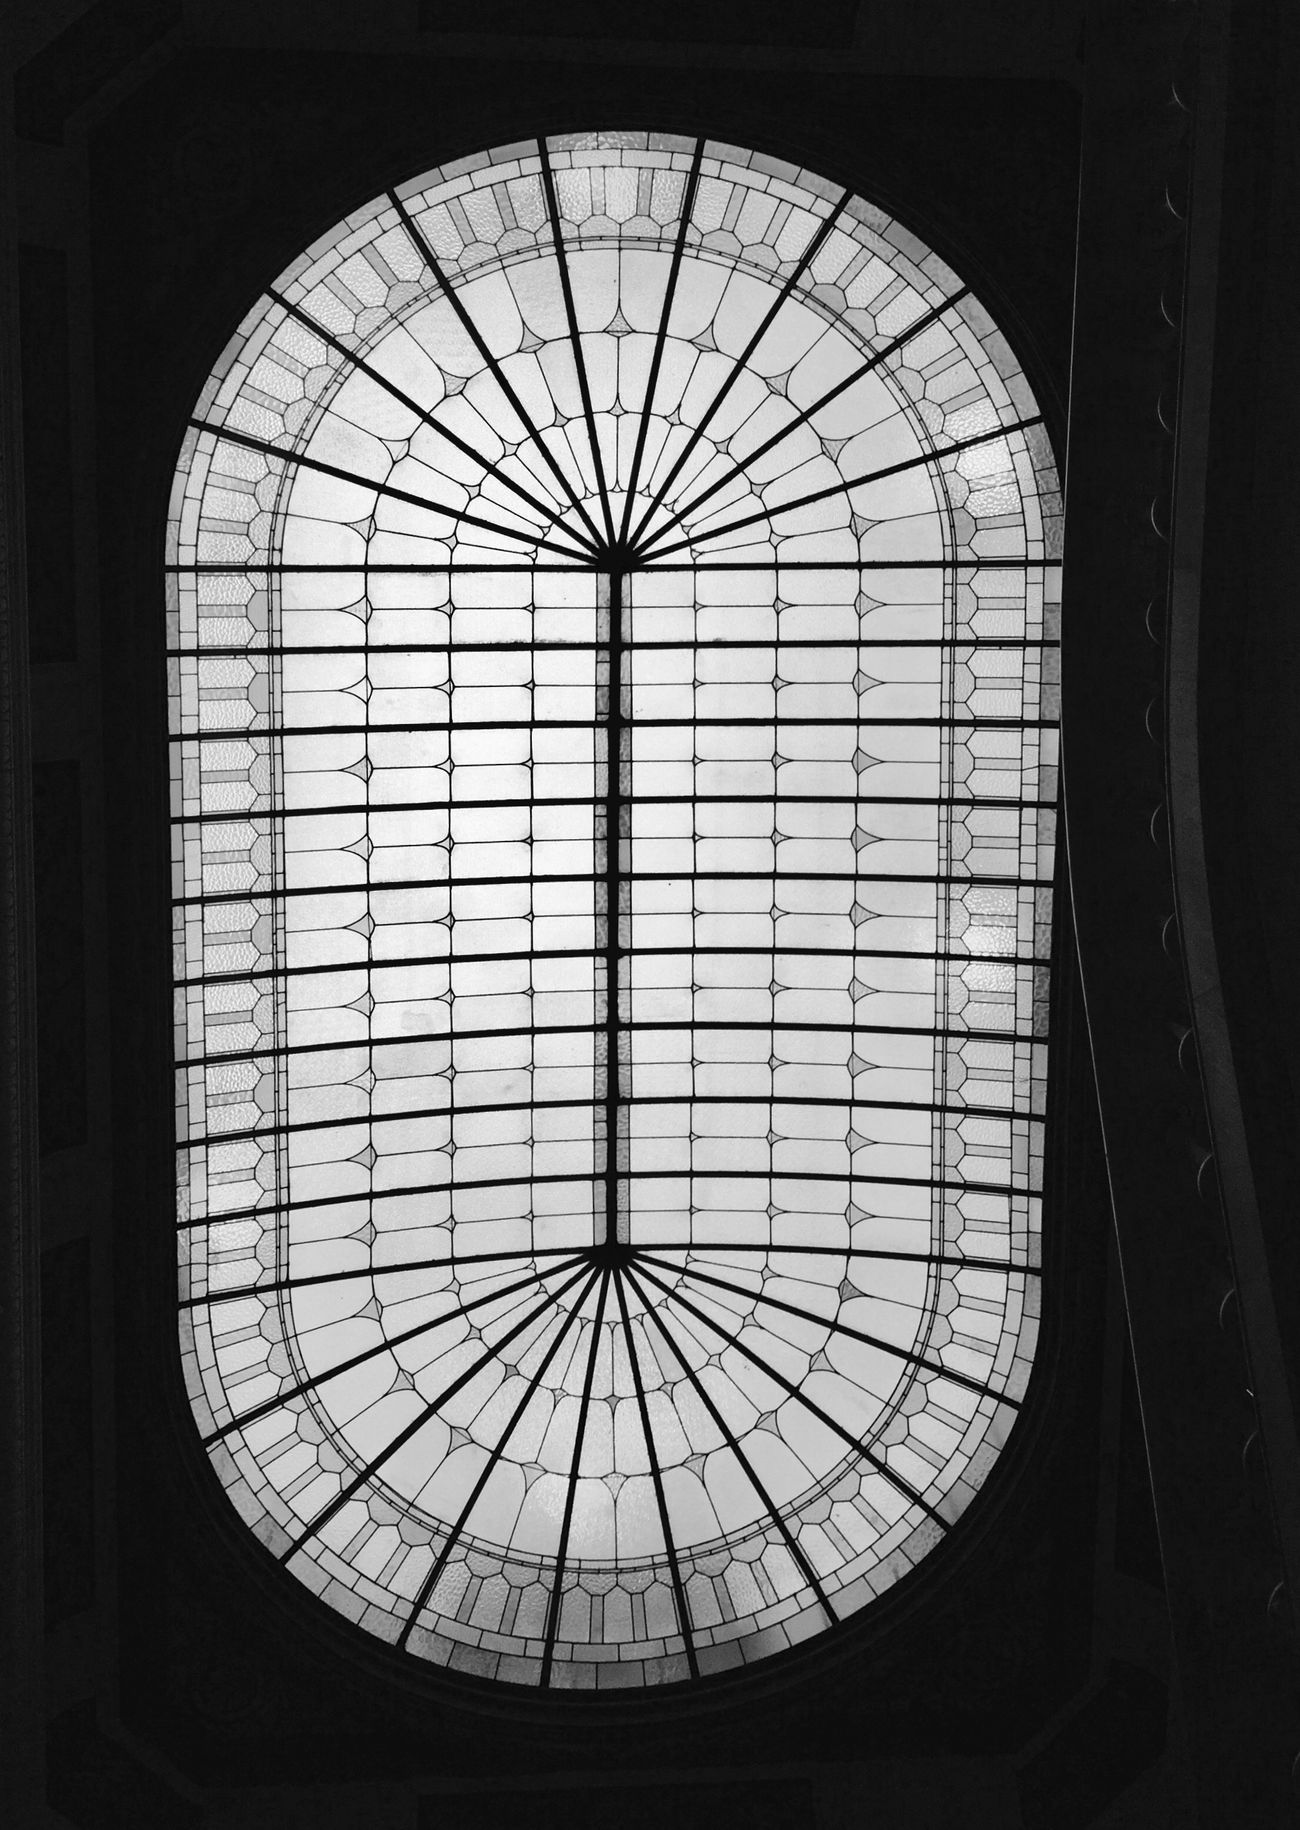 Architecture Built Structure Ceiling Lookingup Architecture Architecture_collection Cúpula Vitral EyeEm Best Shots - Black + White Black And White Blackandwhite Photography Blackandwhite Black & White Bw_collection Architecture_bw EyeEm Gallery Architectural Detail Architecturelovers IPhoneography Iphoneonly Modernisme Barcelona